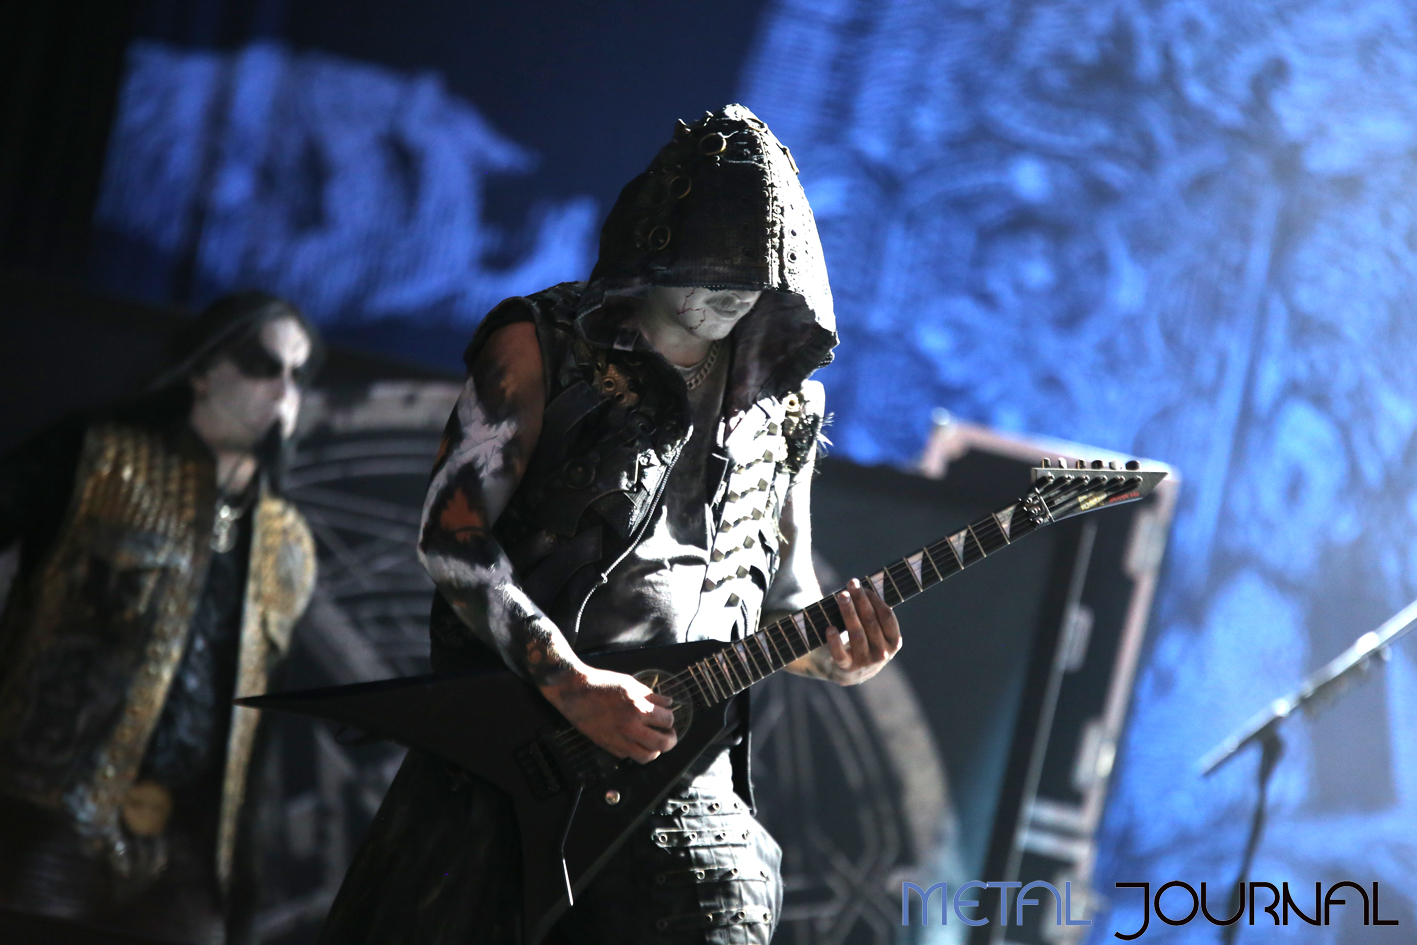 dimmu borgir rock fest 18 - metal journal pic 5